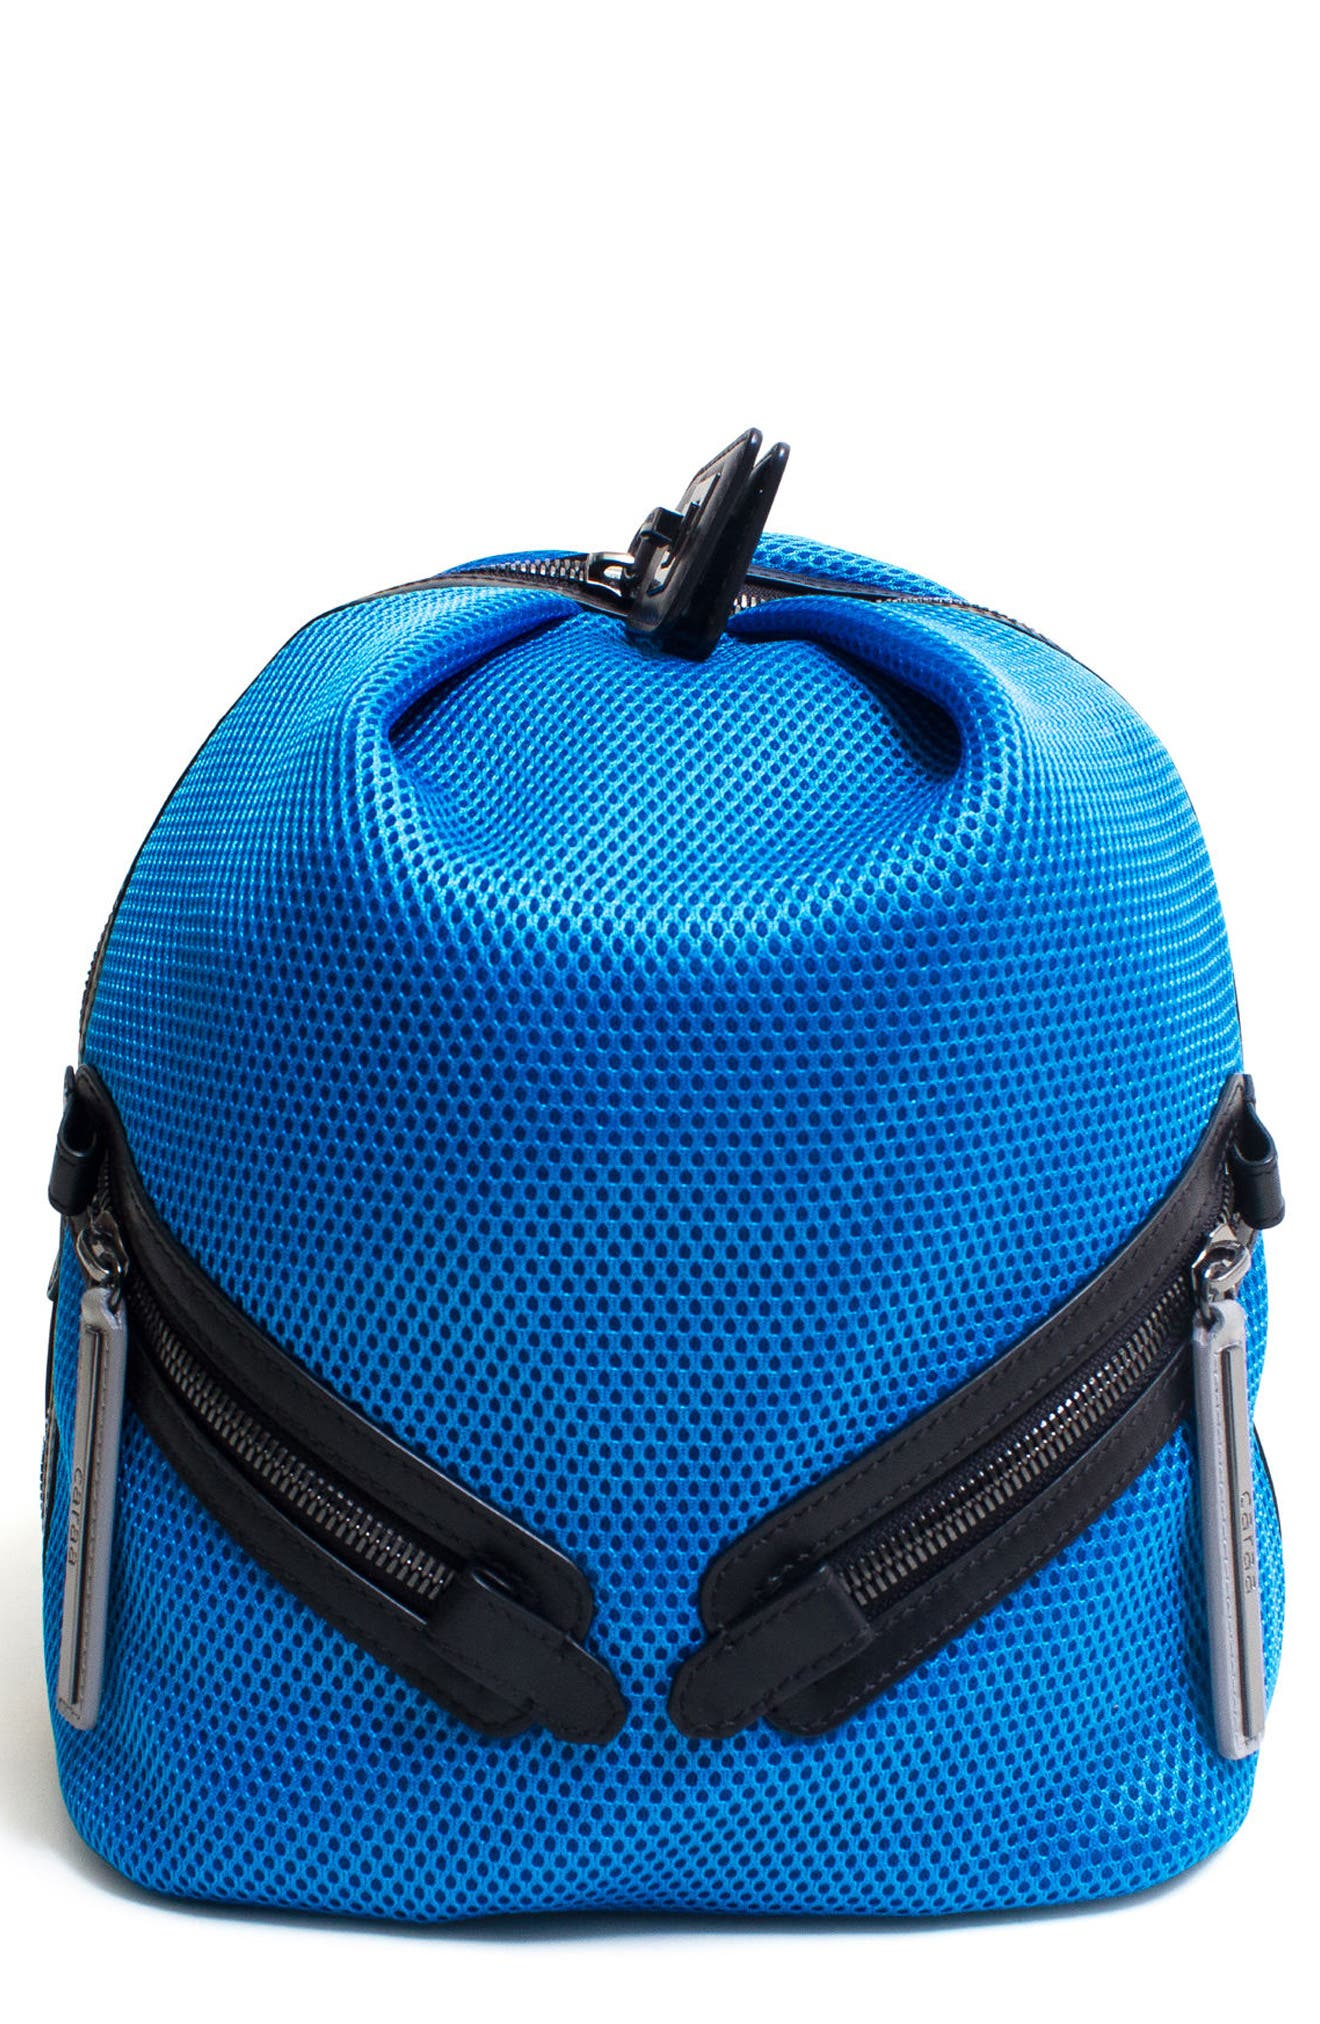 Main Image - Caraa Dance 2 Mesh with Leather Trim Backpack